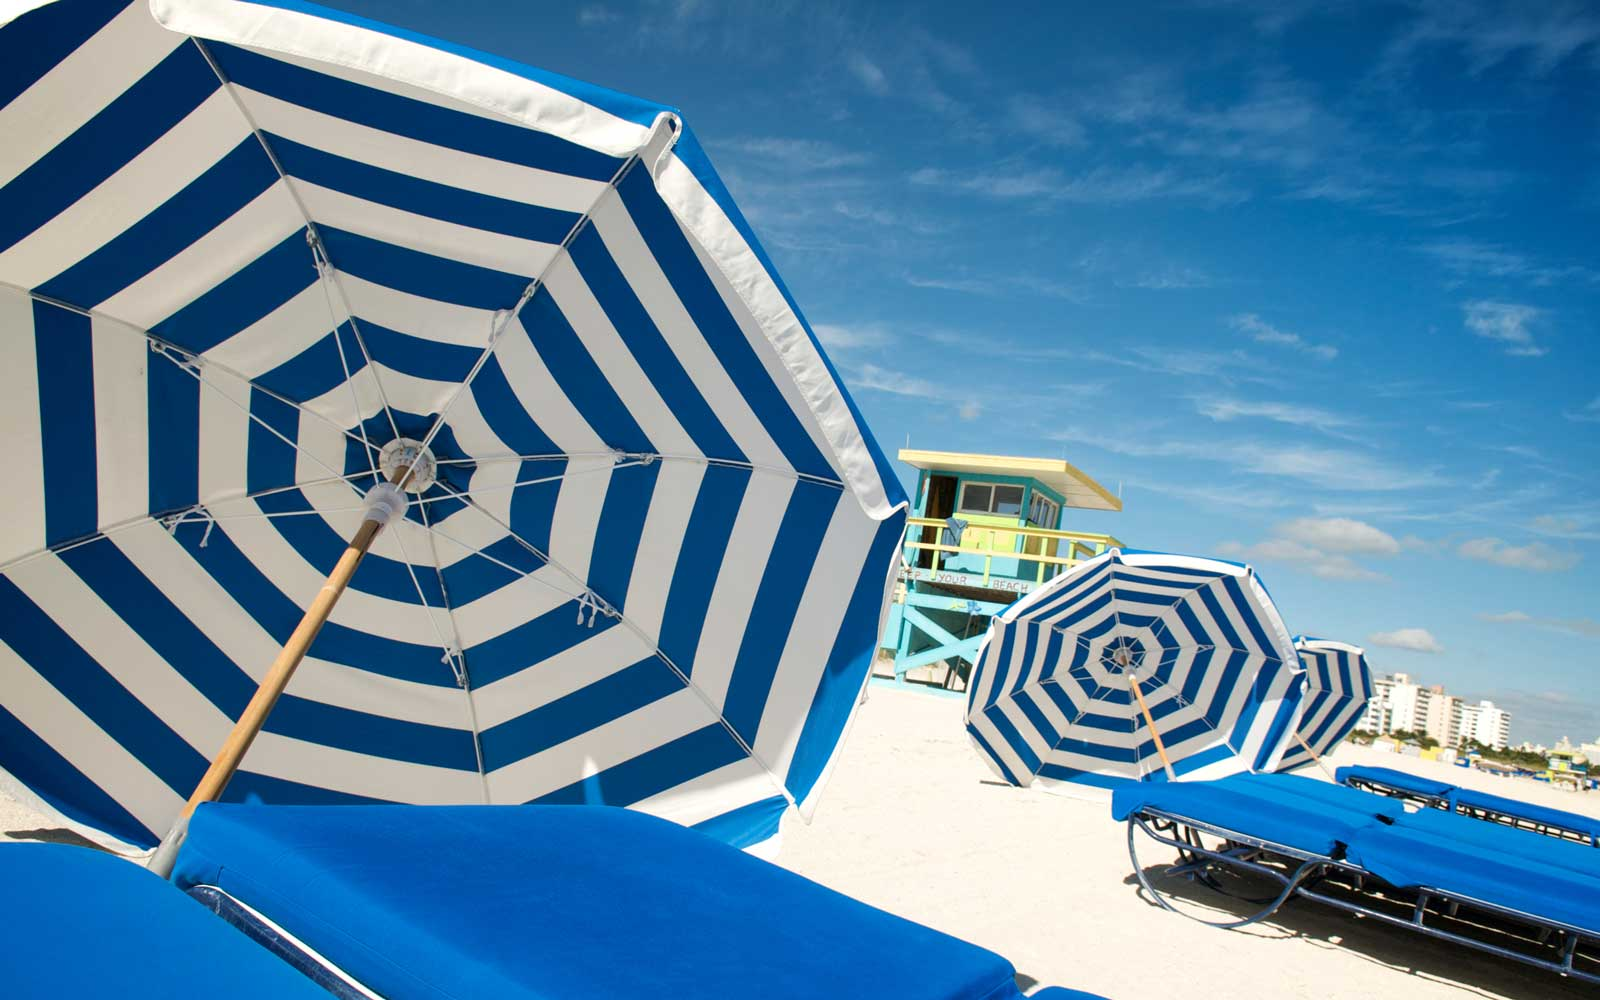 Summer Blue White Stripes Beach Umbrellas and Loungers